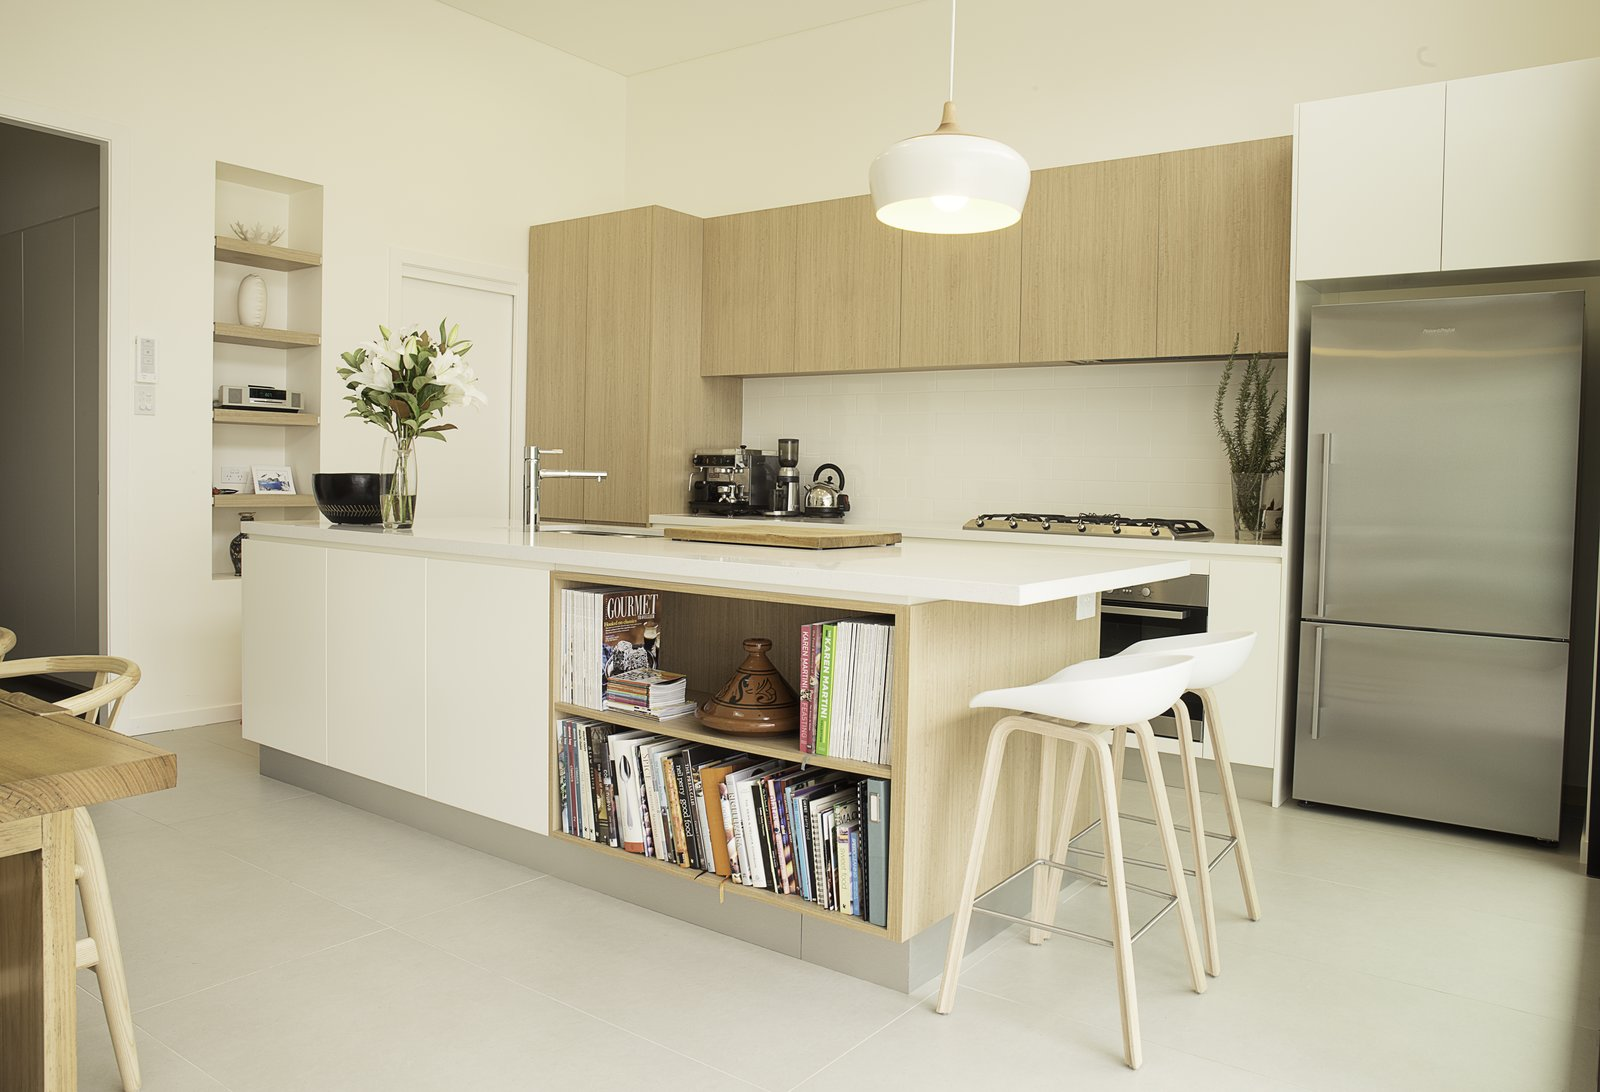 """Kitchen, White Cabinet, Undermount Sink, Refrigerator, Wood Cabinet, Pendant Lighting, Wall Oven, and Cooktops This """"Coogee kitchen"""" was designed by Nadia Hursky for Blue Tea Kitchens.    Photo 9 of 11 in 10 Design Tips for Kitchens, According to Expert Renovators"""